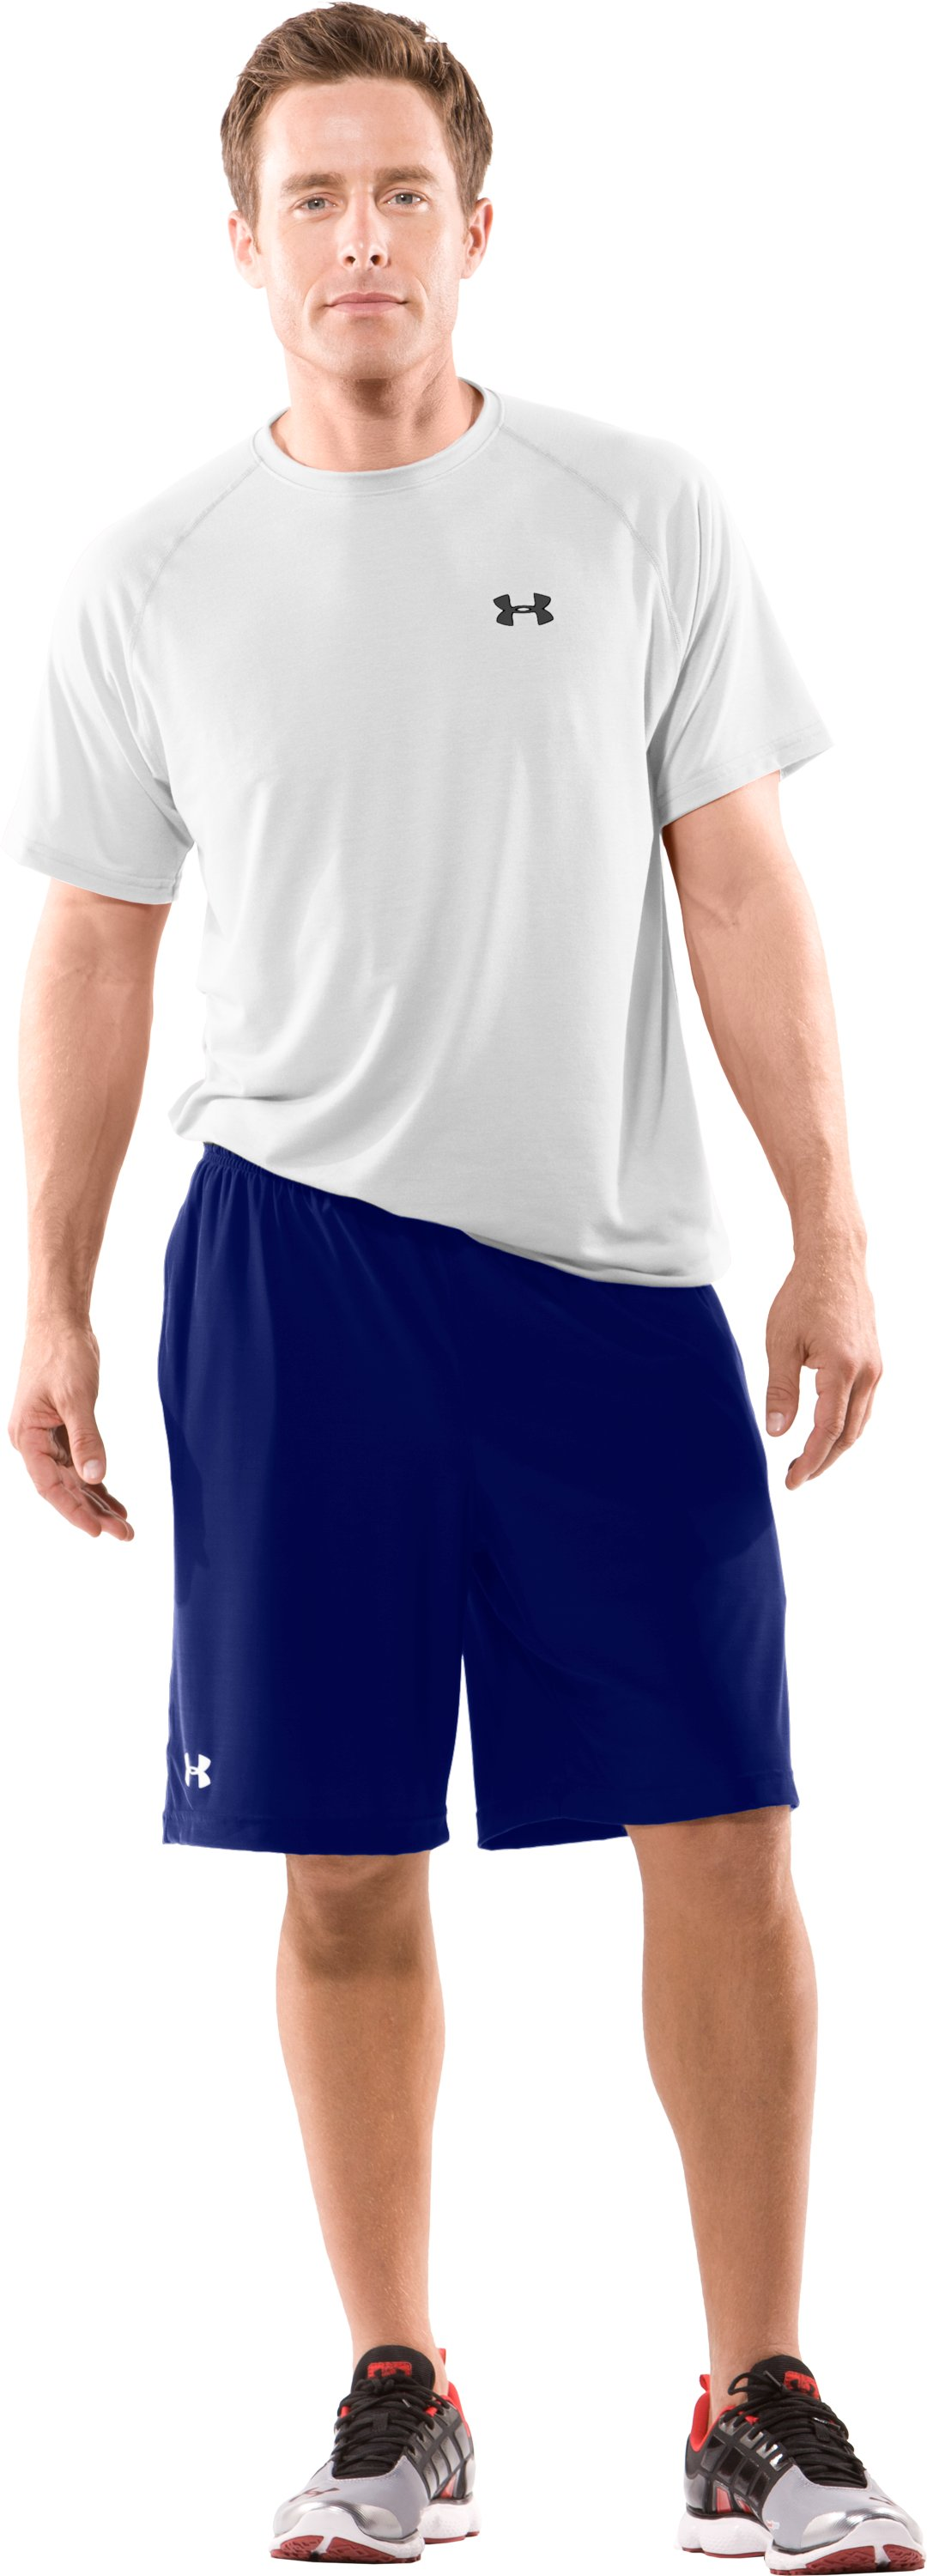 Men's Team Micro Short II, Royal